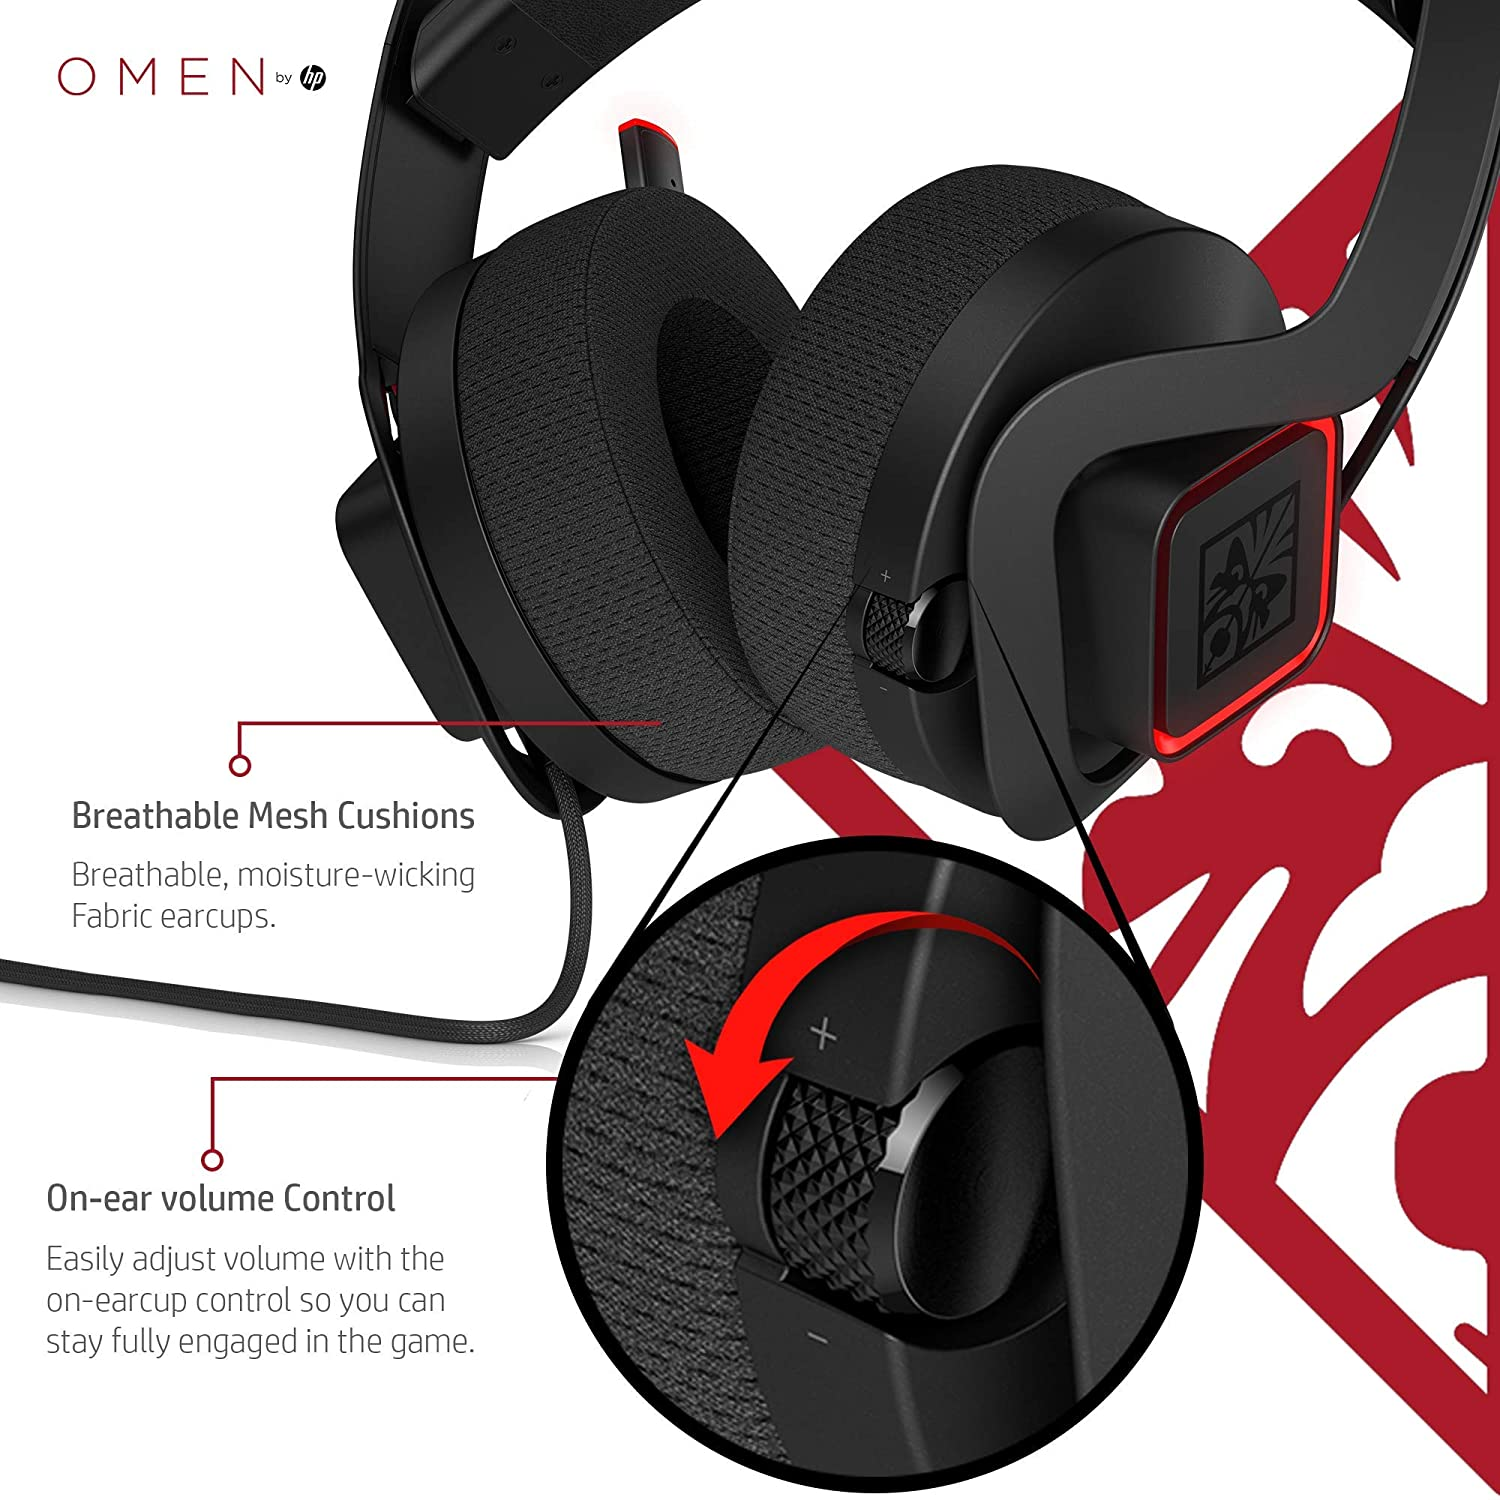 OMEN by HP Mindframe PC Gaming Headset with World's First FrostCap Active Cooling Technology (black) 3XT27AA#ABB